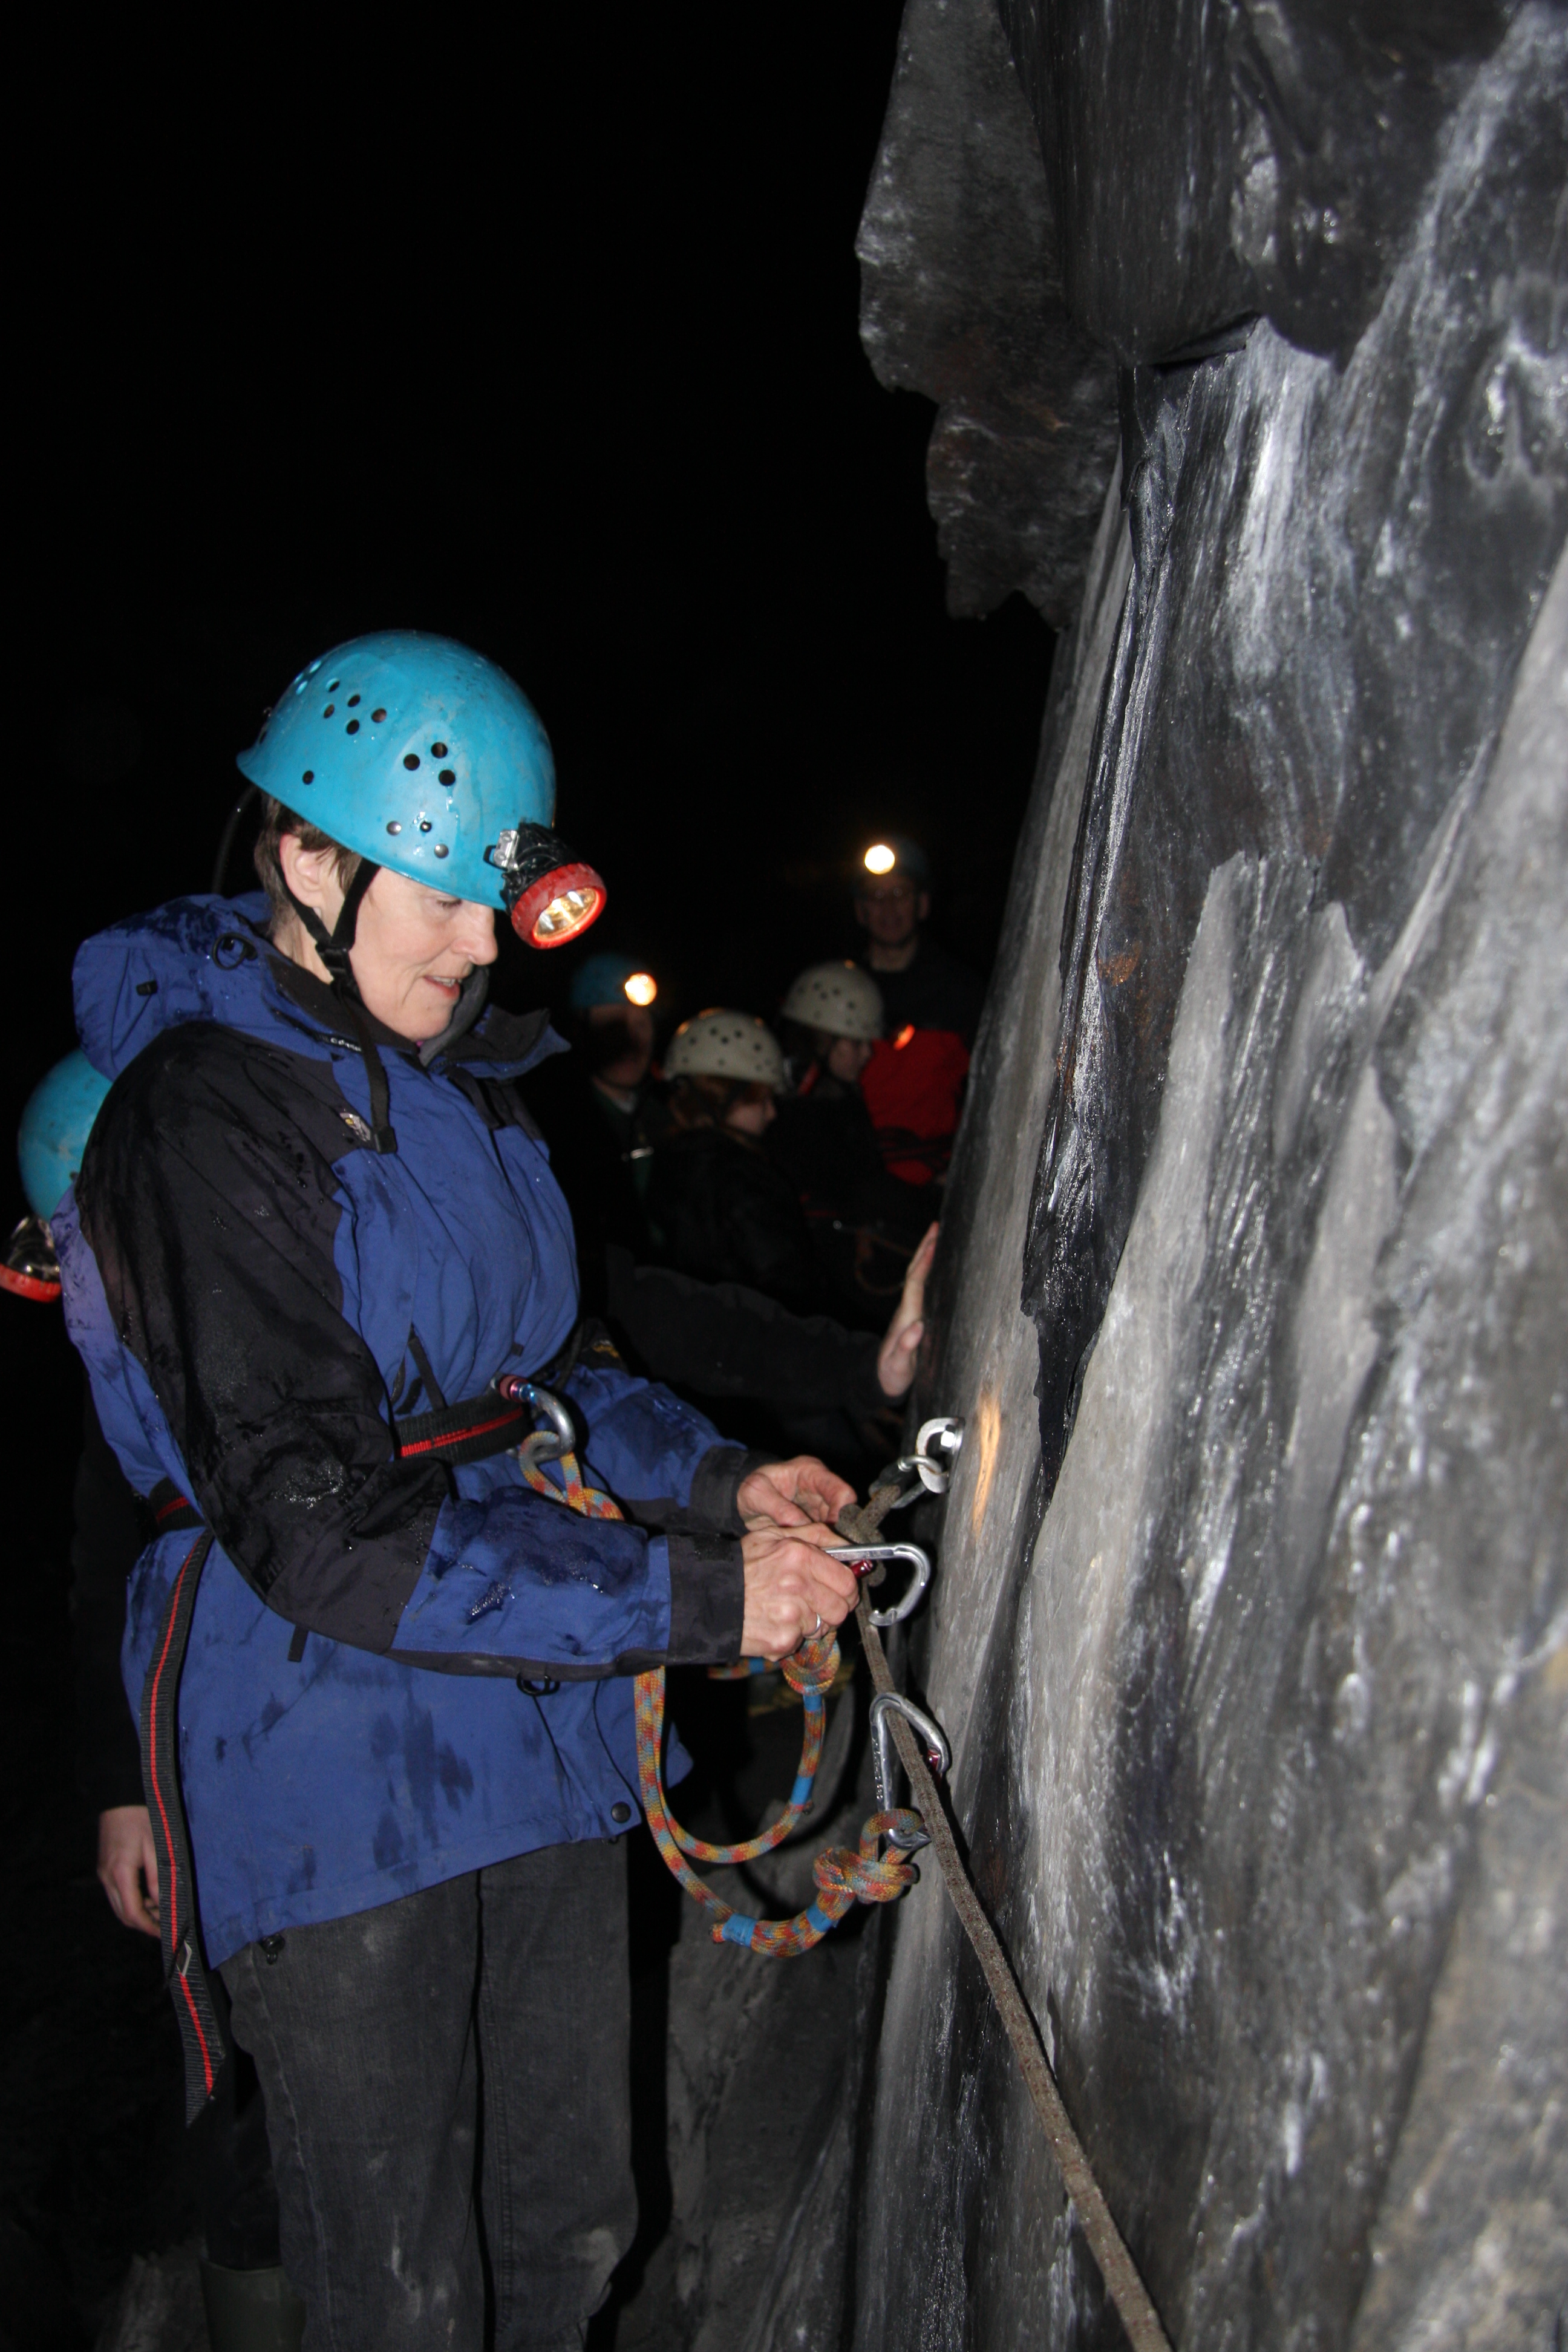 Clipping onto the safety ropes to explore the old Braich Goch slate mine